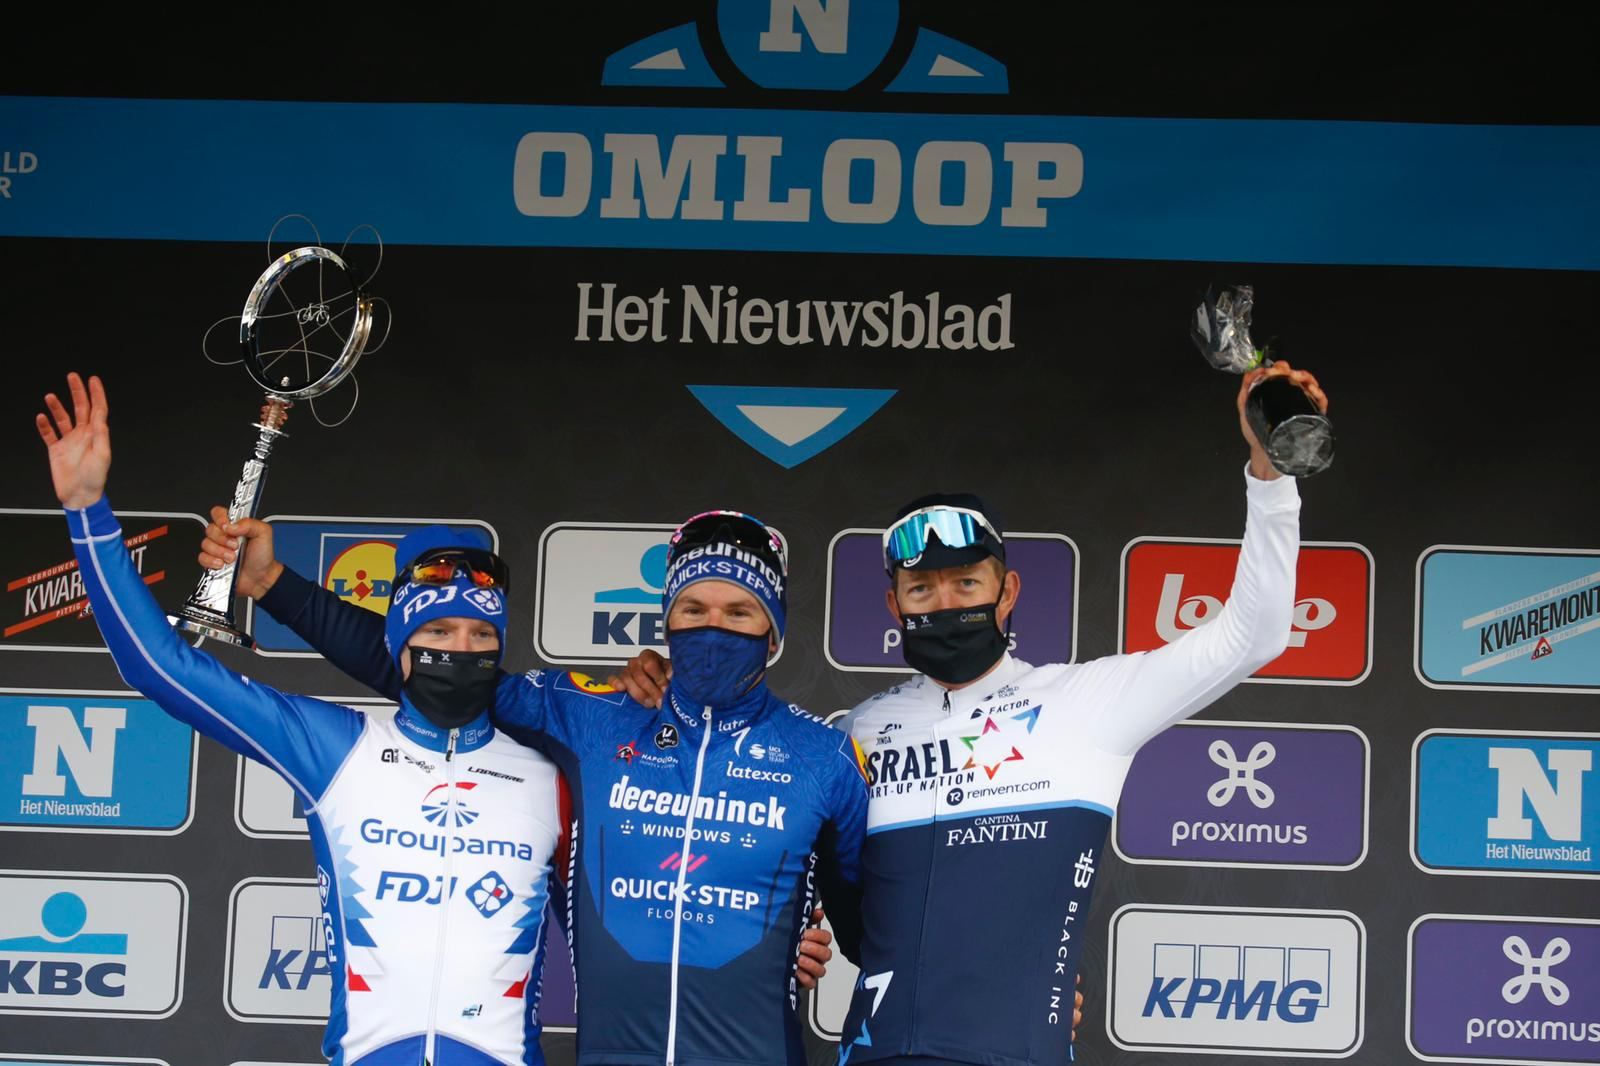 Sep Vanmarcke back on the podium in Omloop Het Nieuwsblad